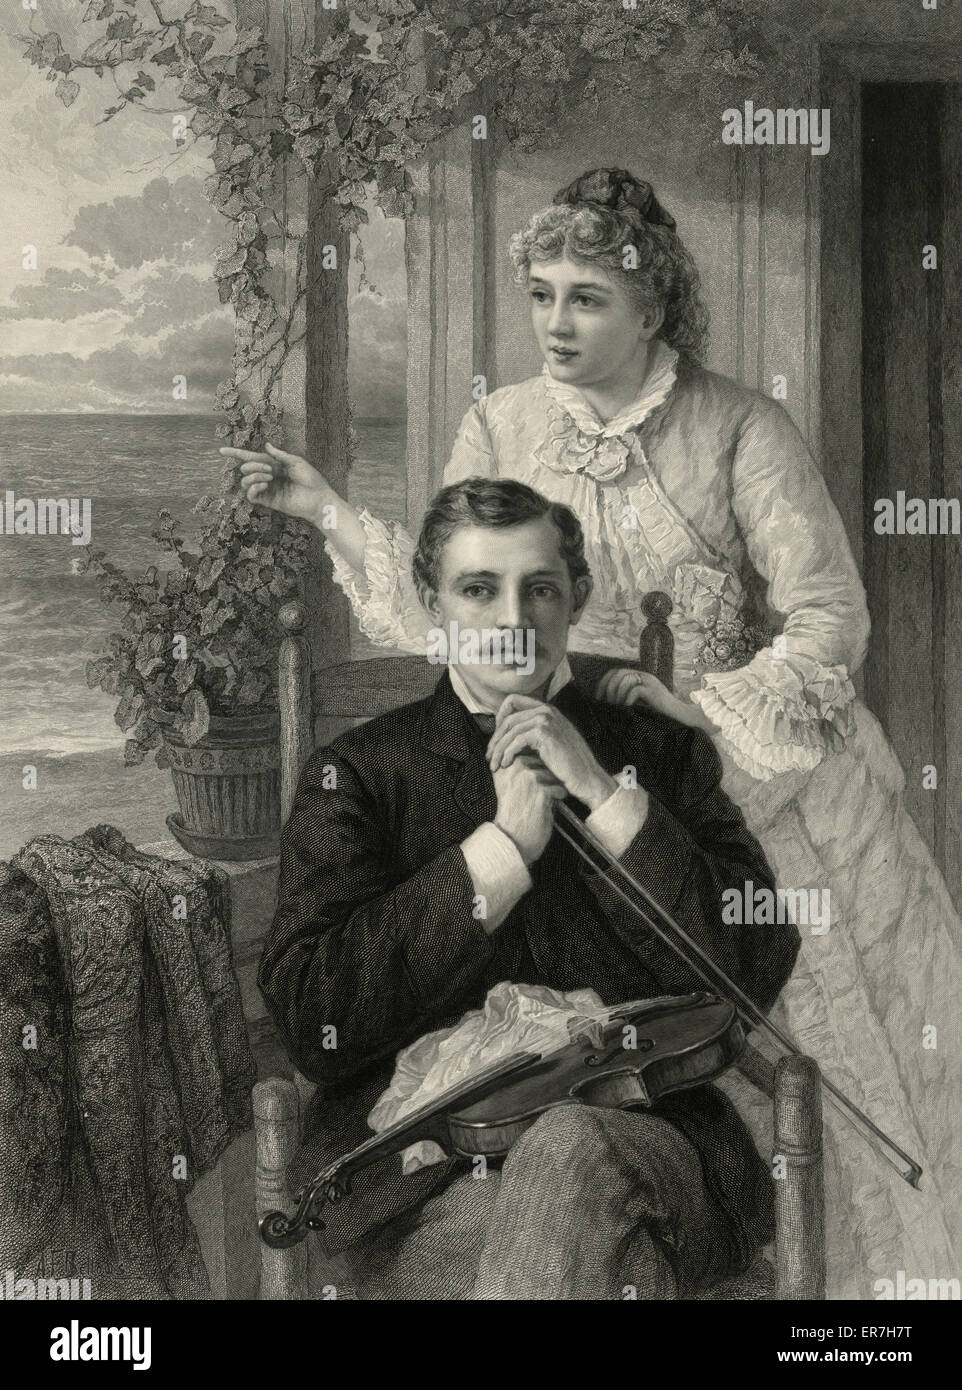 The response. Date c1883. - Stock Image